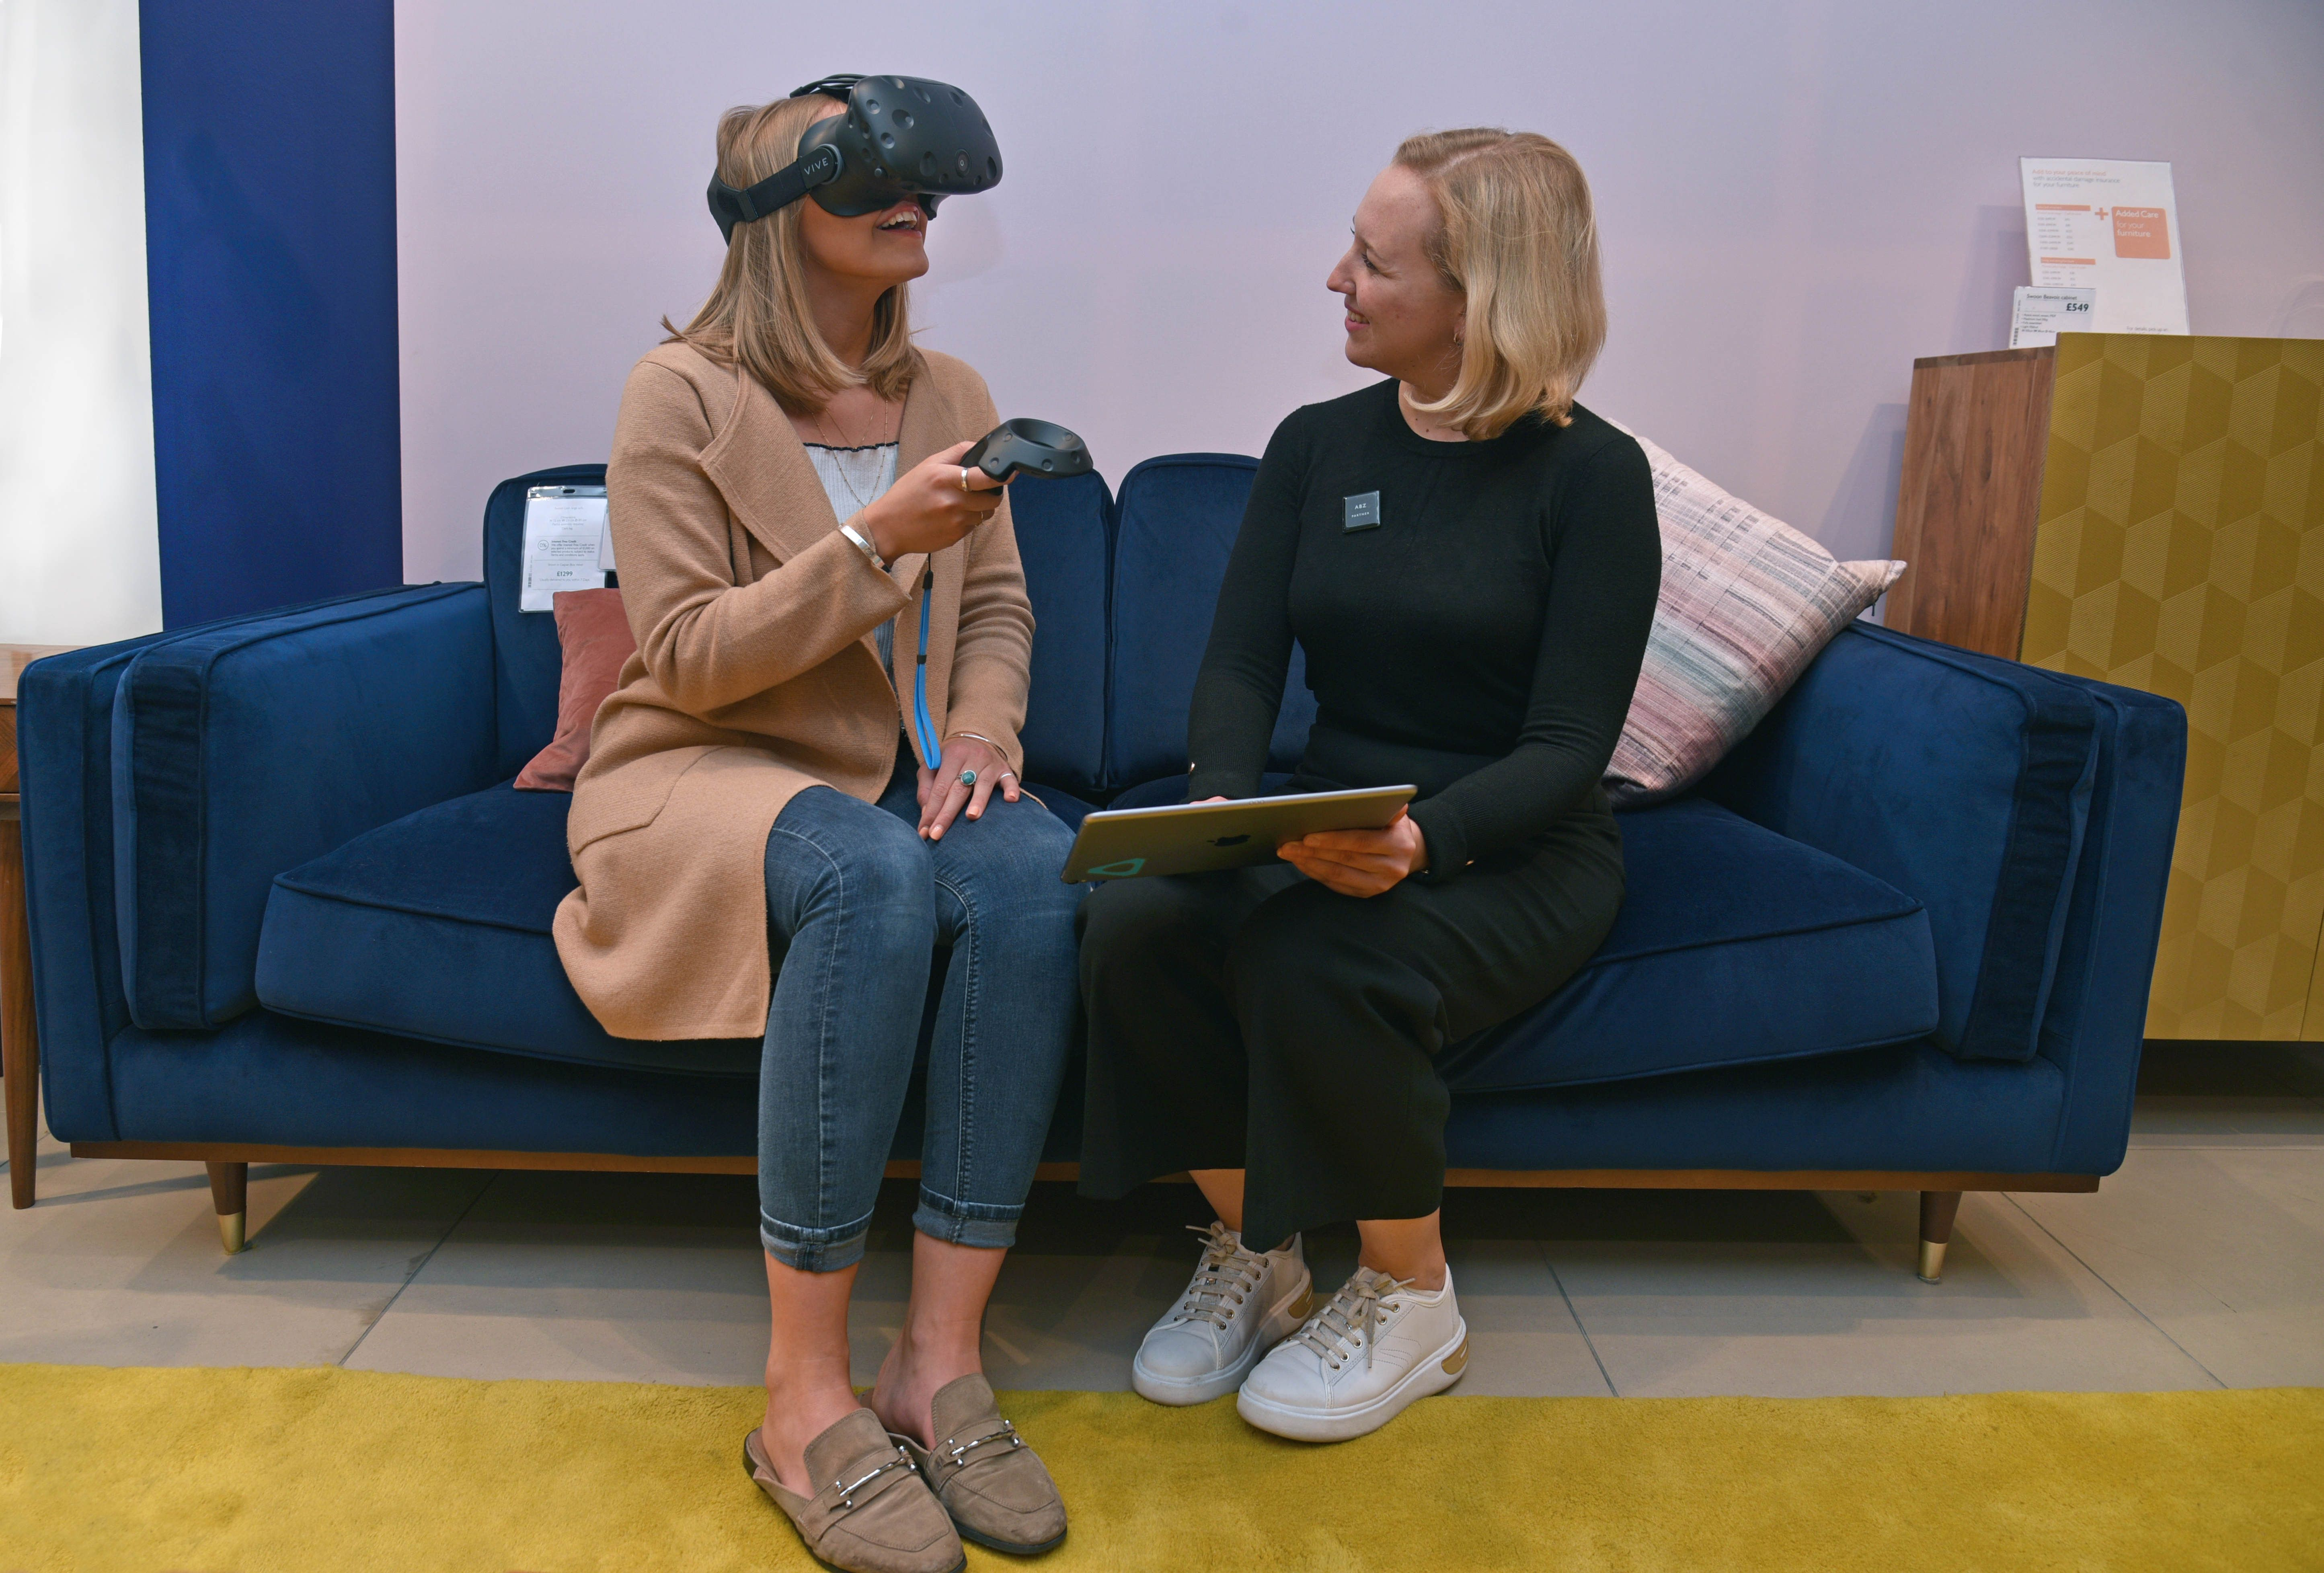 John Lewis & Partners to trial new in-store virtual reality experience